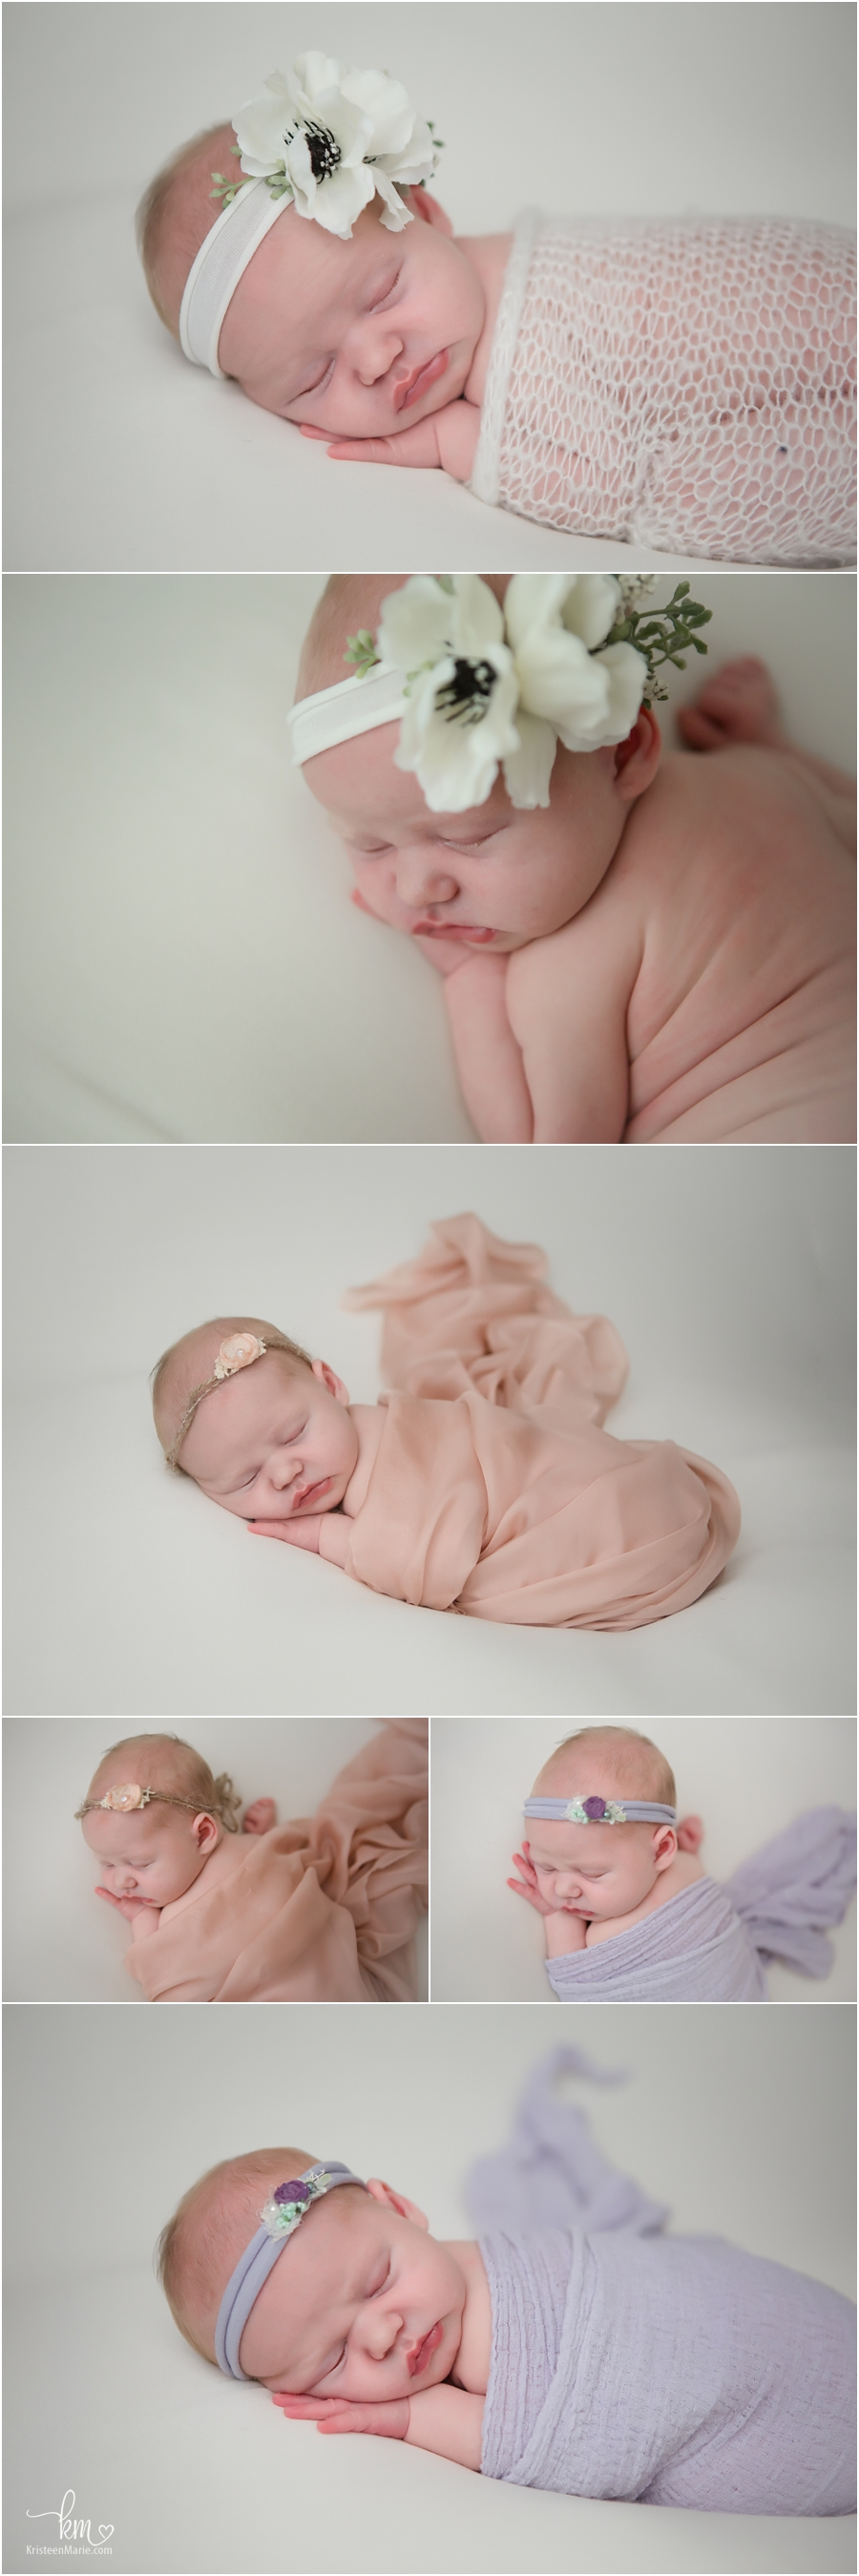 newborn baby girl photographed on white